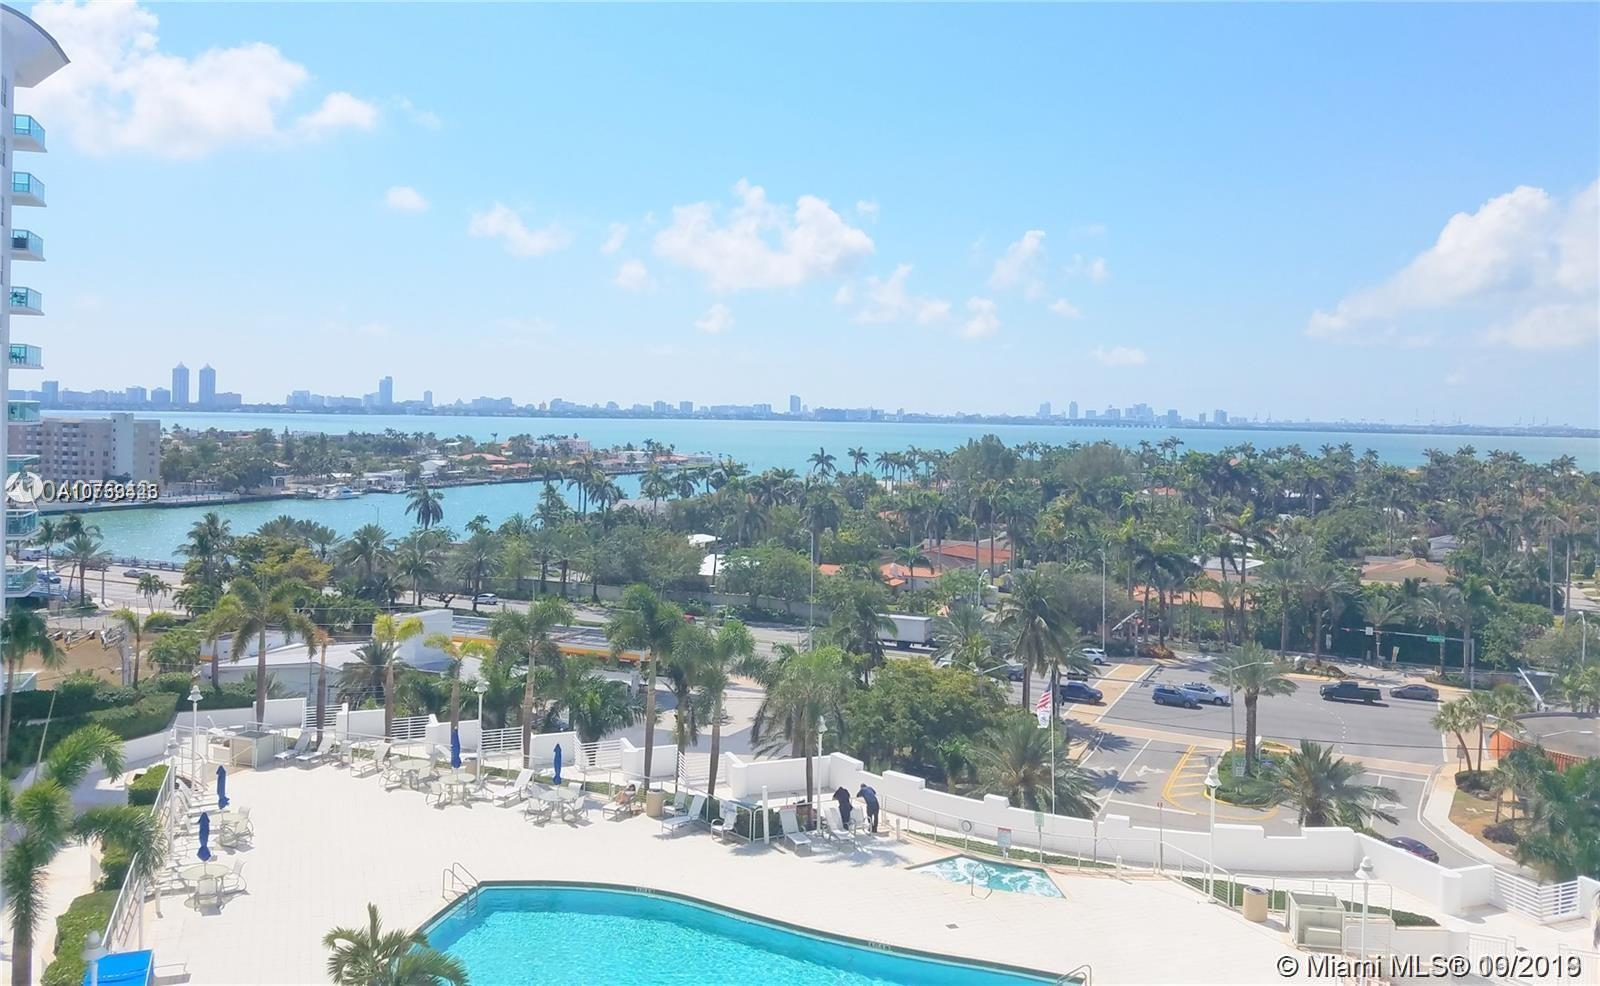 Unbelievable water and downtown  views from every room in this beautiful 2 Bedroom 2 Bath Condo. Laminated floors all through out, granite counter tops and Stainless Steel appliances. Washer and Dryer inside the unit. Resort Style living: Fitness center, Pool, Jacuzzi, 24-hour Security, Valet and much more. Perfect location, easy access to Miami. Unit rented for $2350 a month. Please give 24hs notice to show.